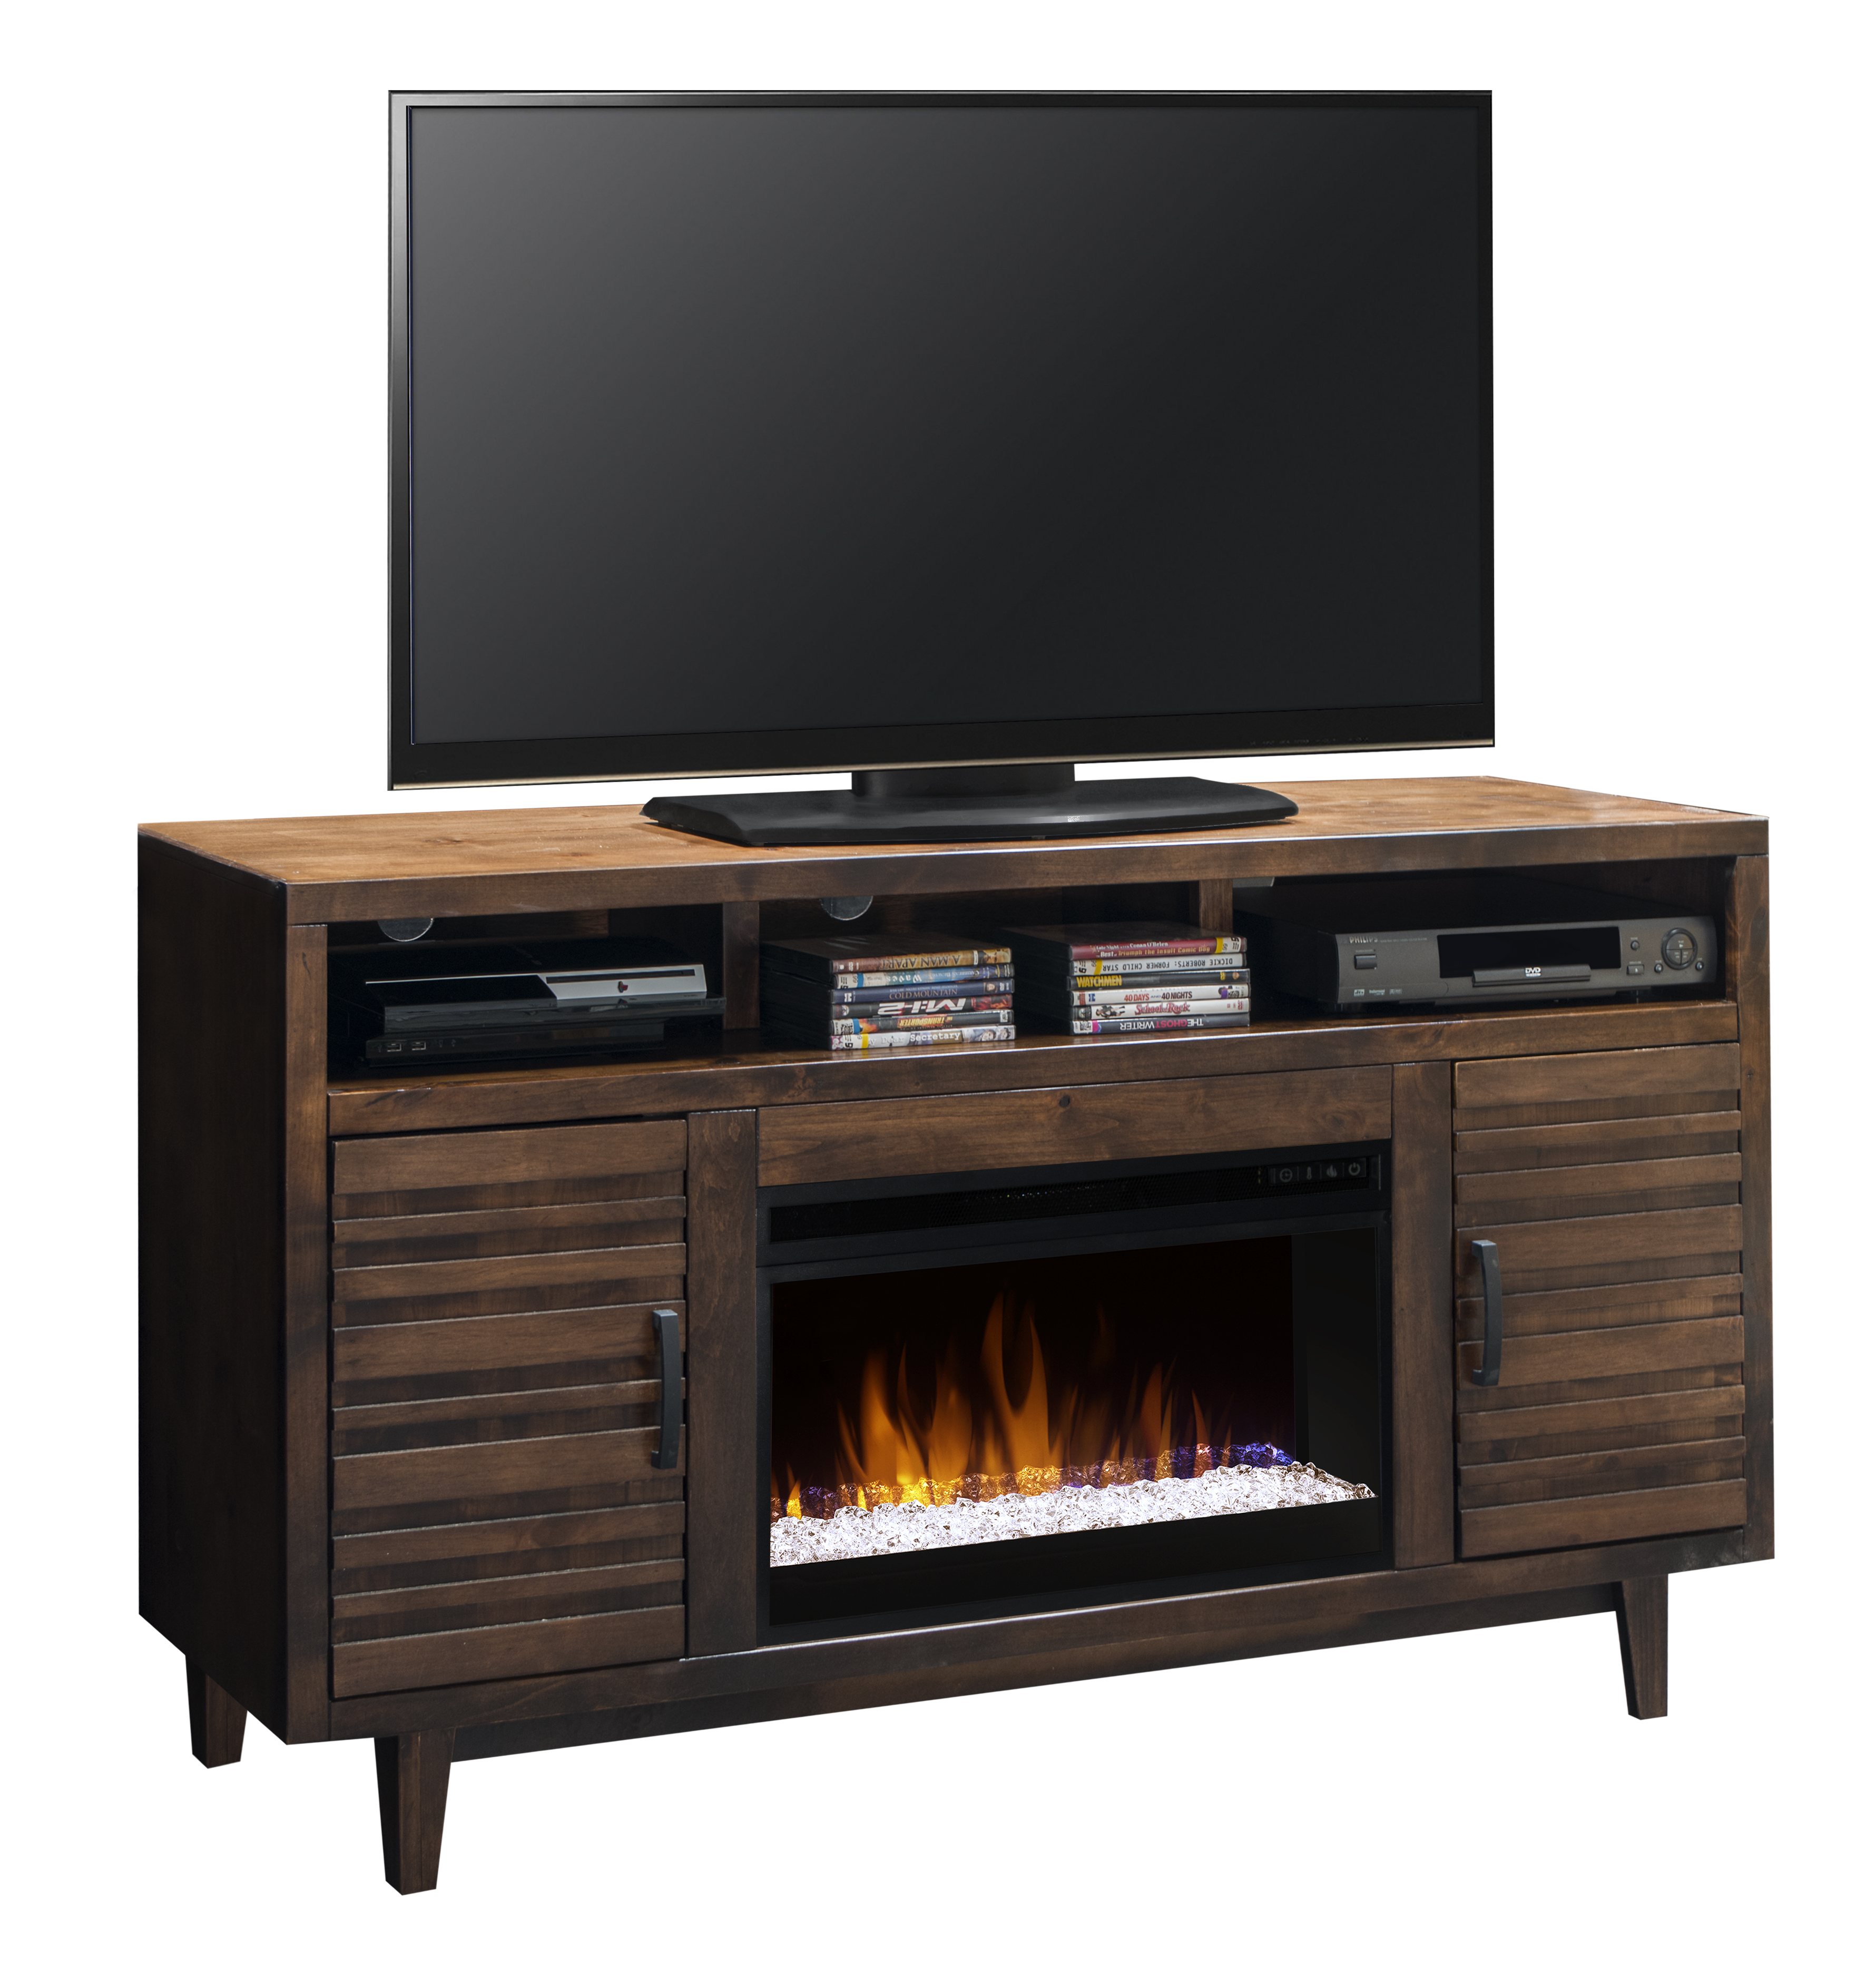 "Legends Furniture Glendale Collection Glendale 62"" Fireplace Console - Item Number: GN5201-KIT"